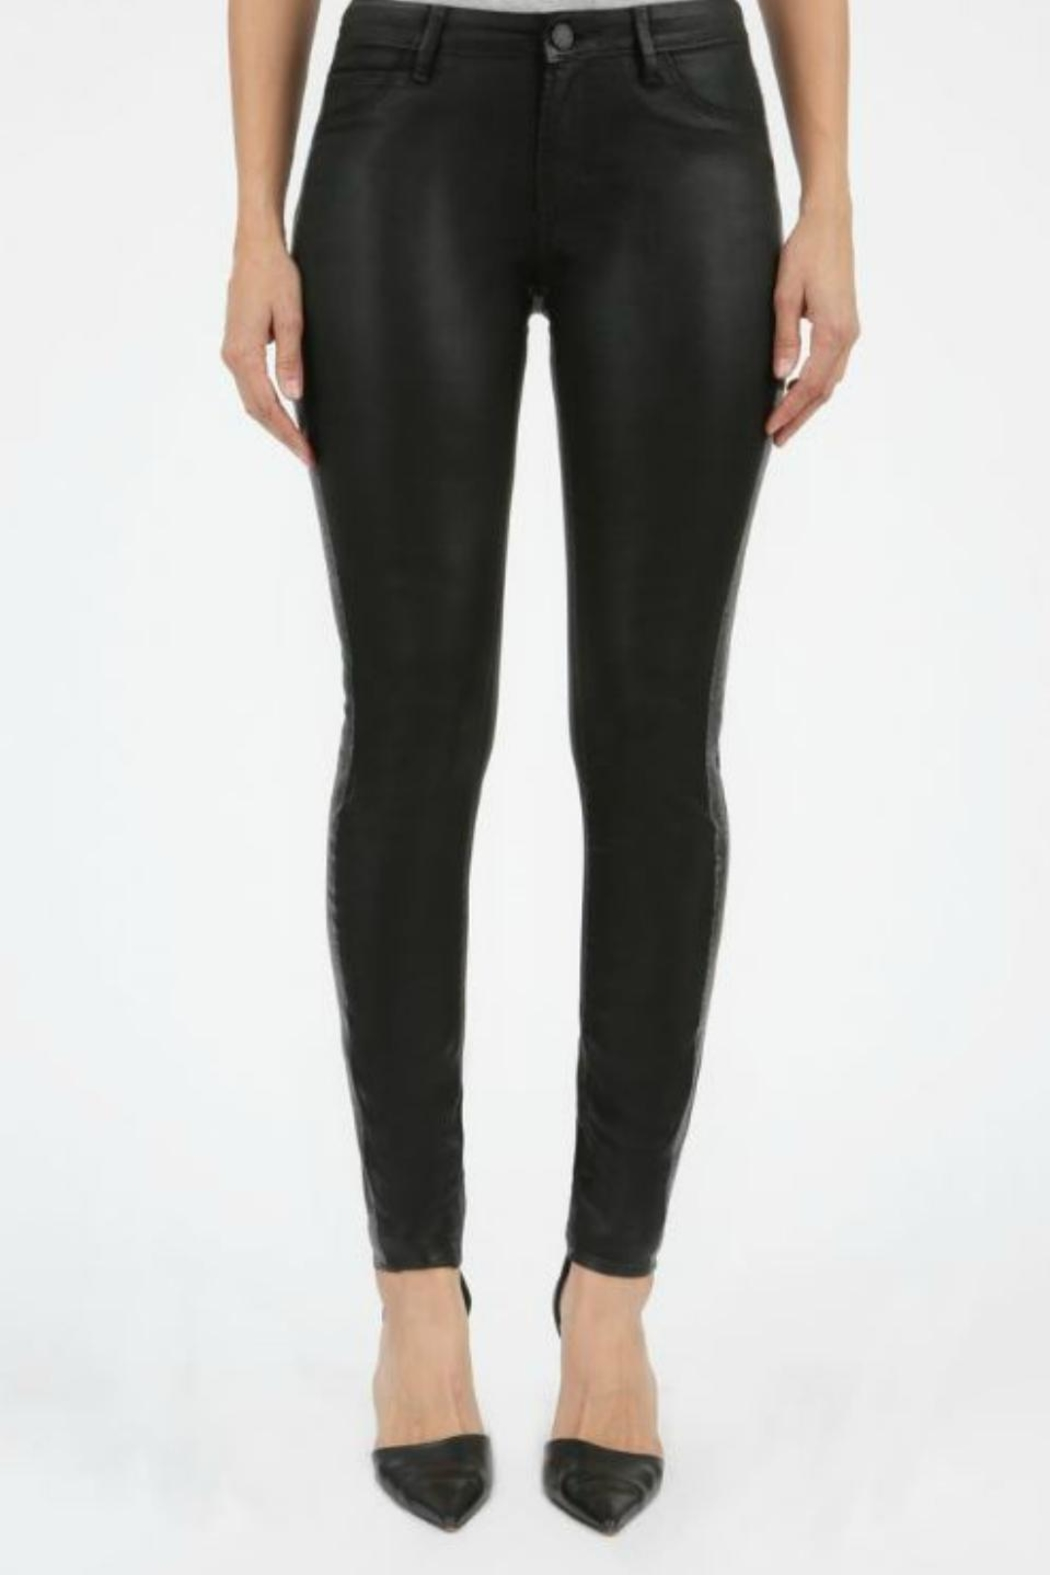 Articles of Society Accented Skinny Jeans - Main Image